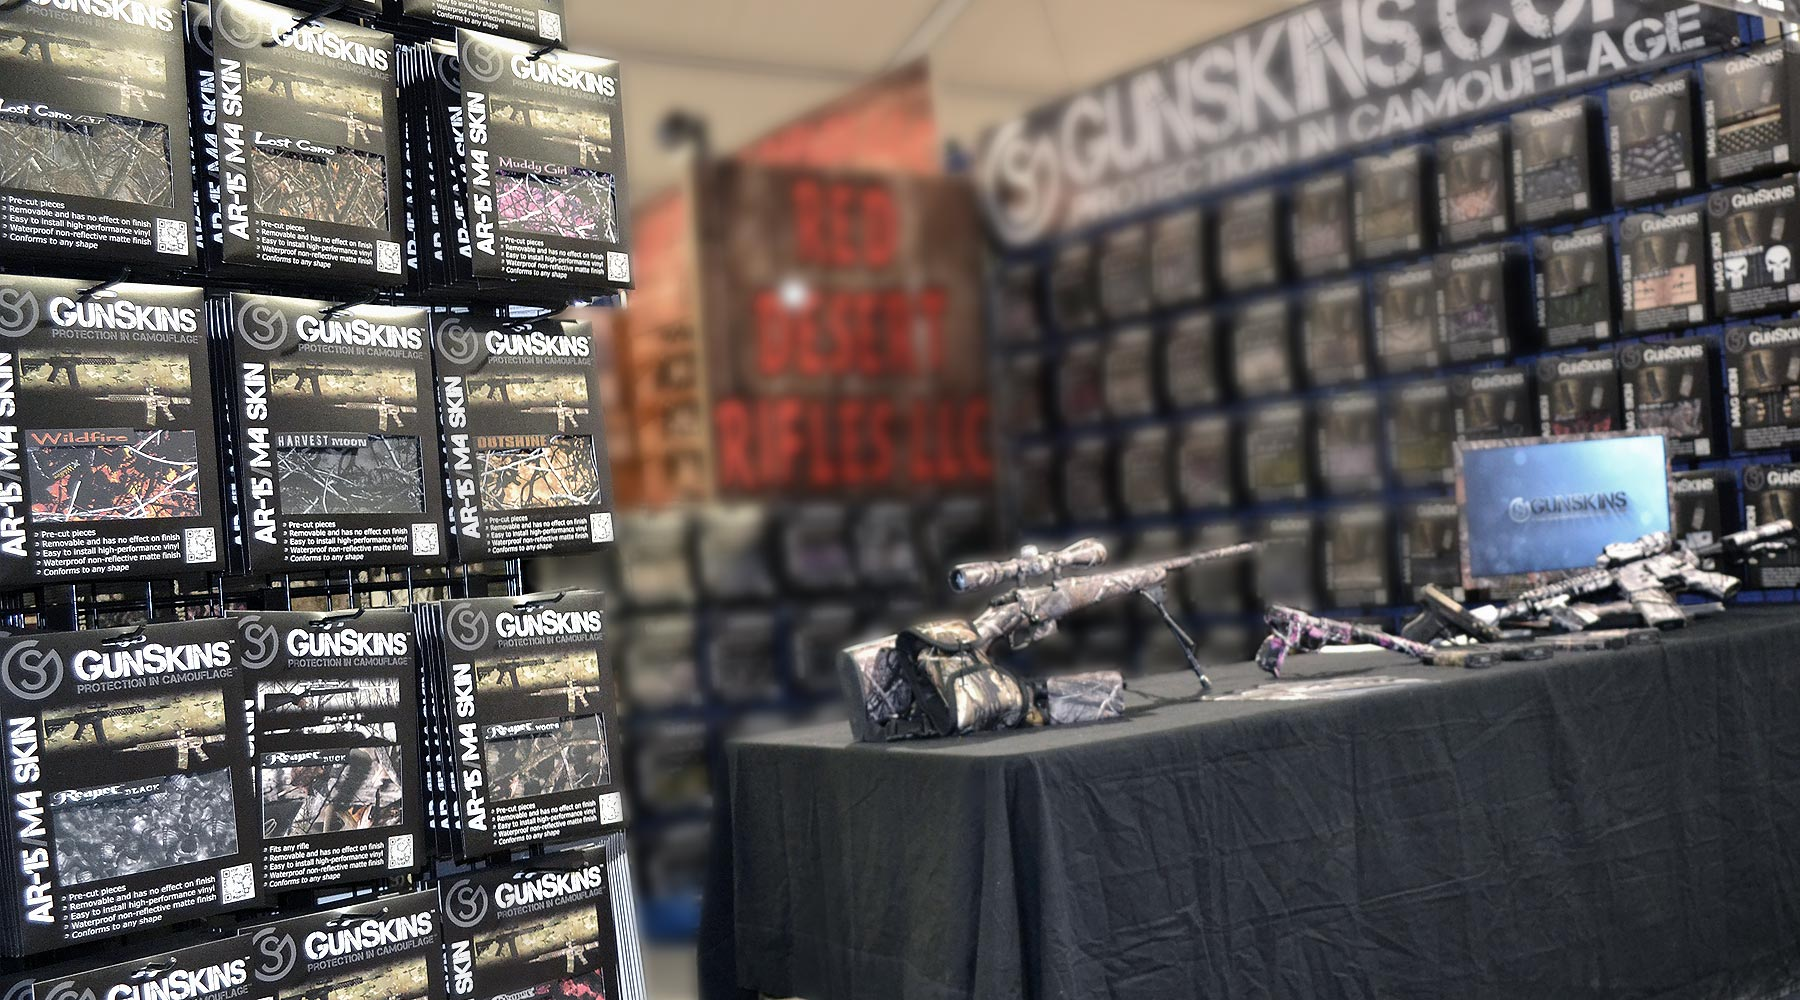 GunSkins Booth